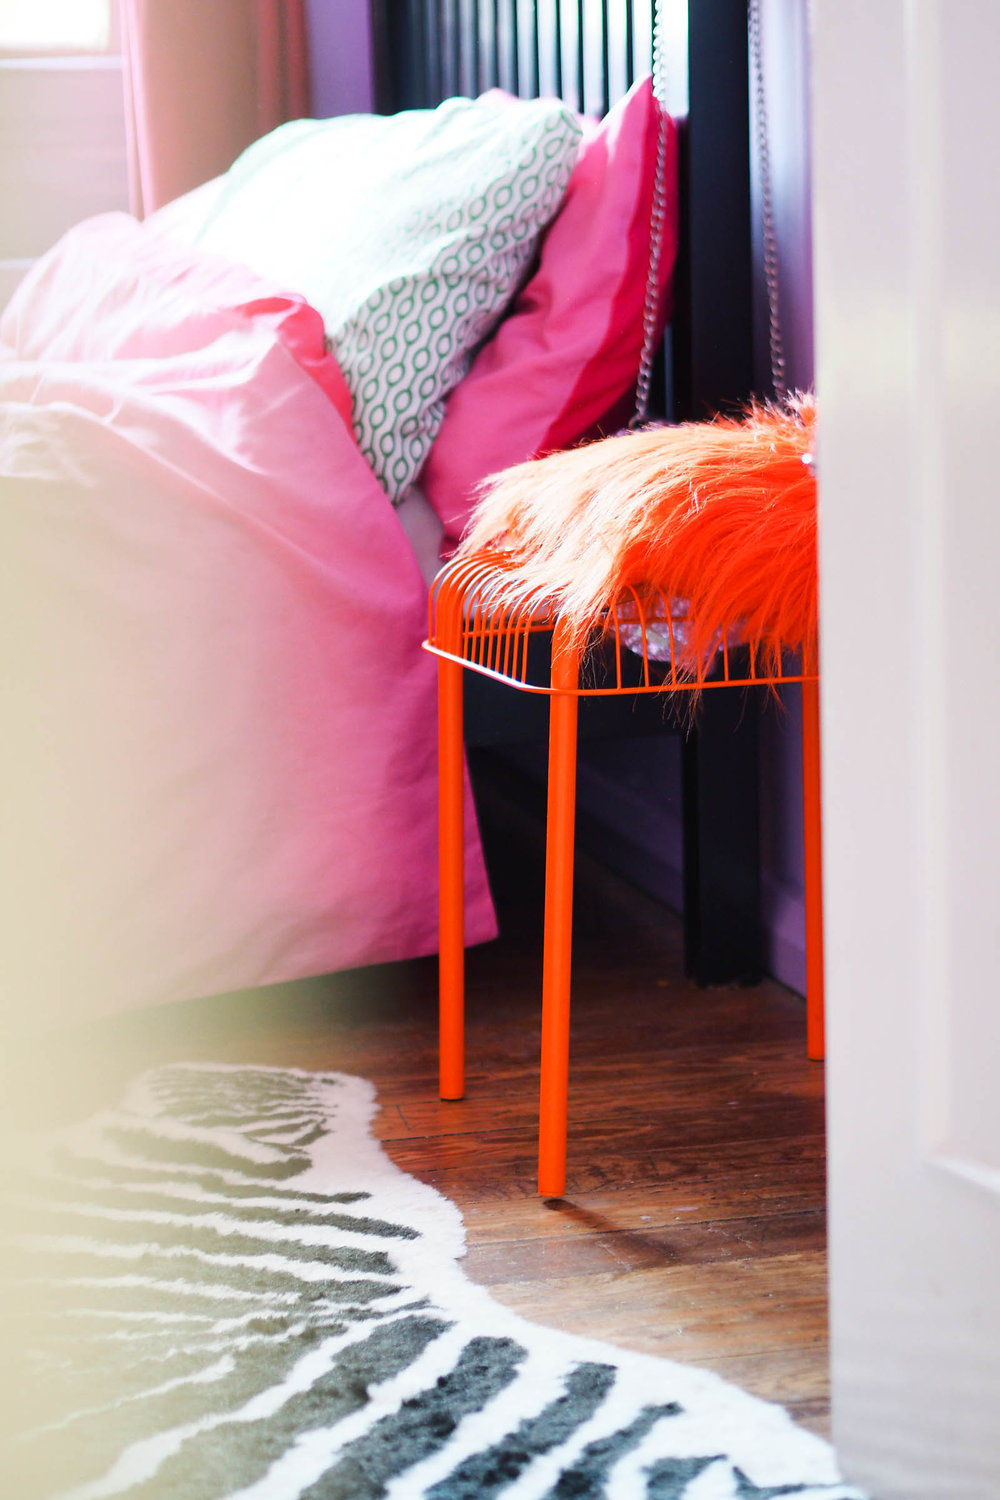 Amy's colourful and eclectic location house in Margate